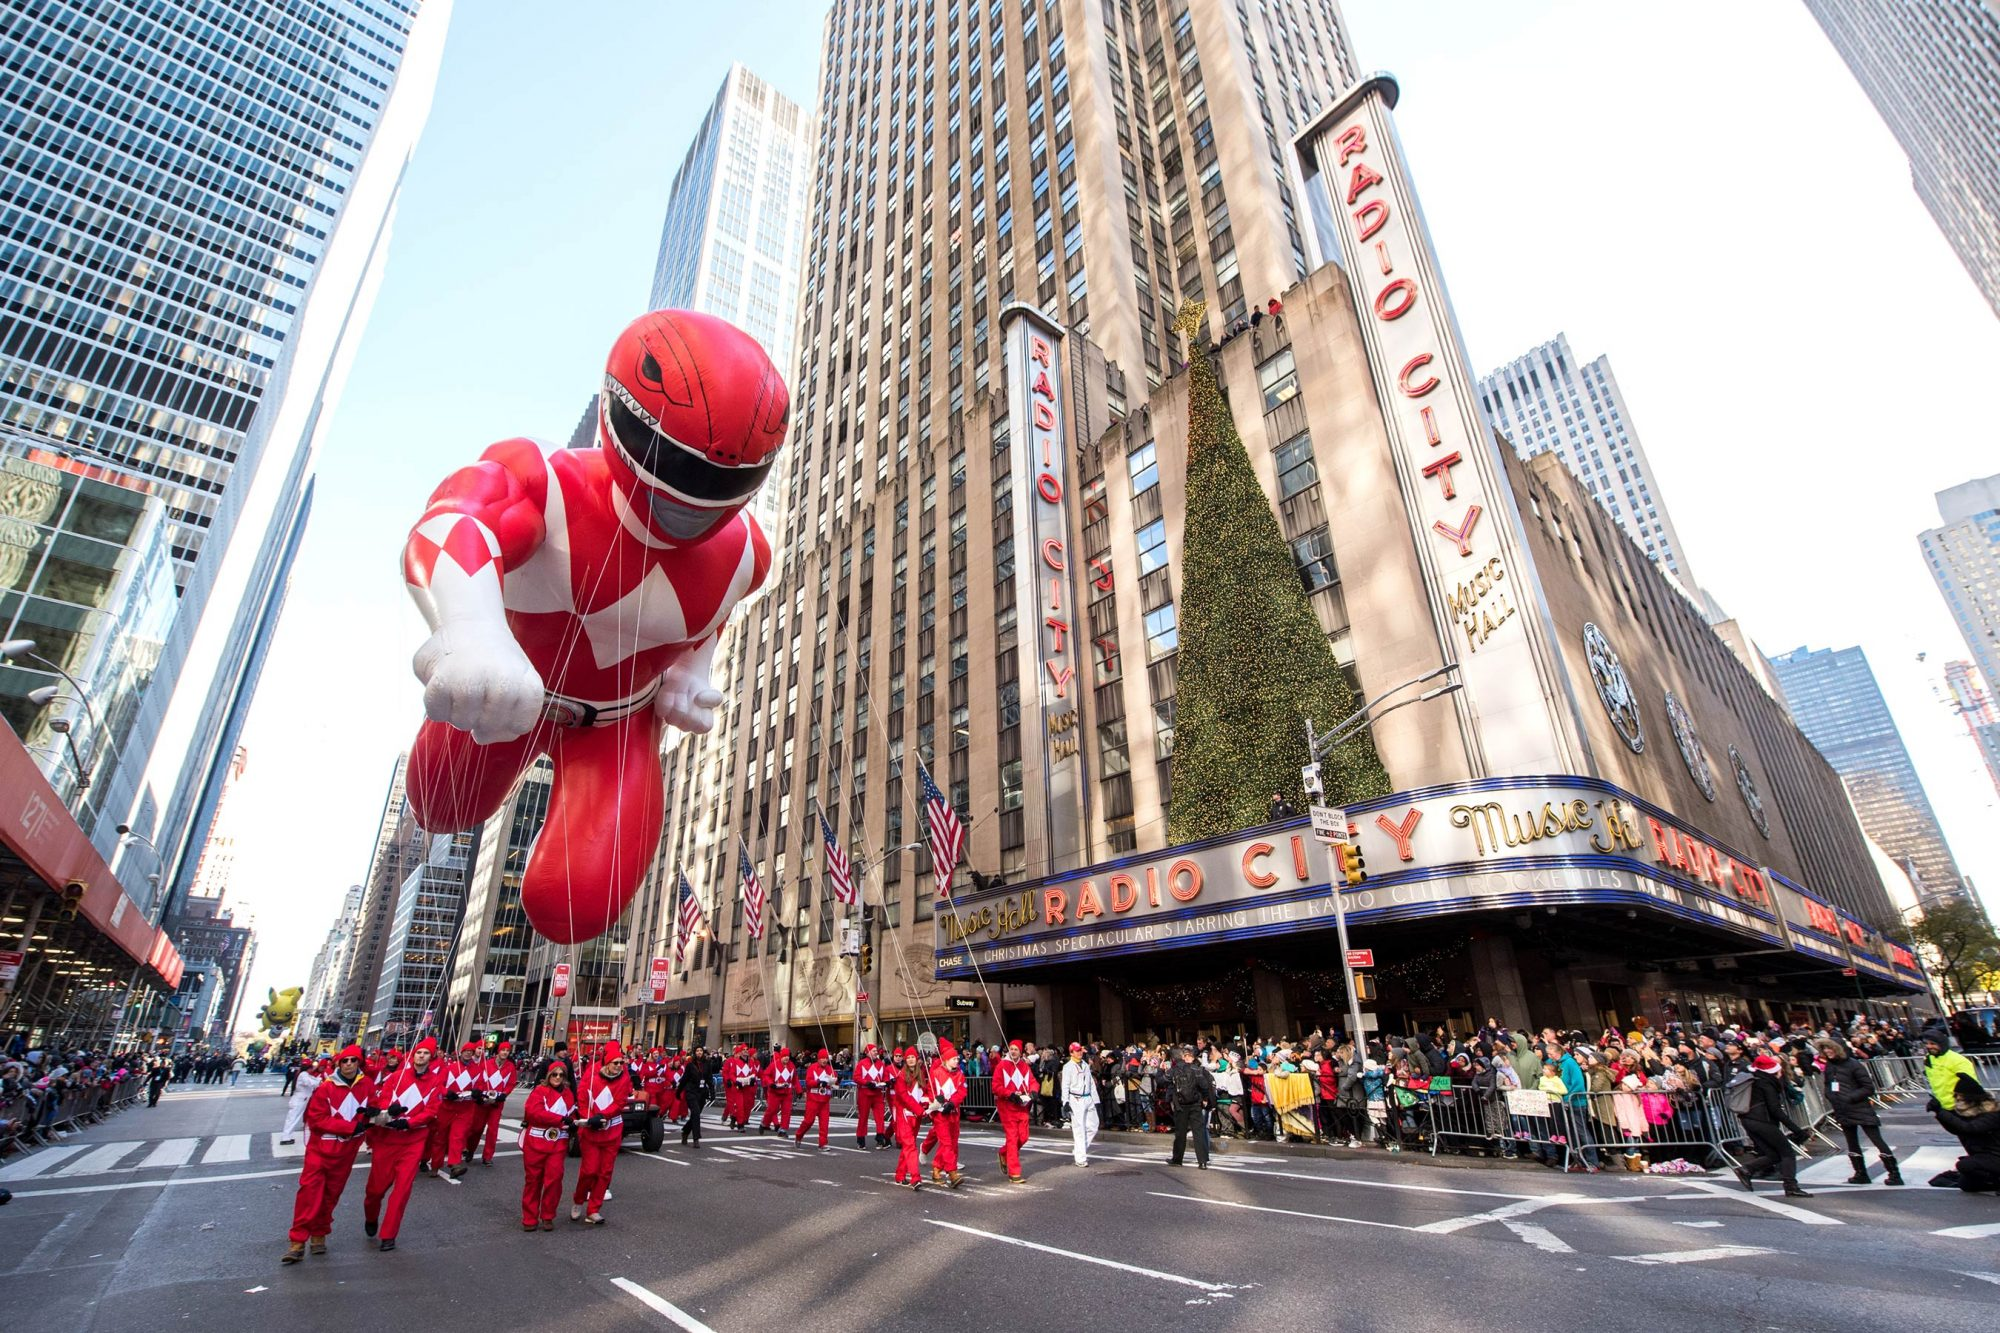 Power Rangers Balloon at the 91st Annual Macy's Thanksgiving Day Parade